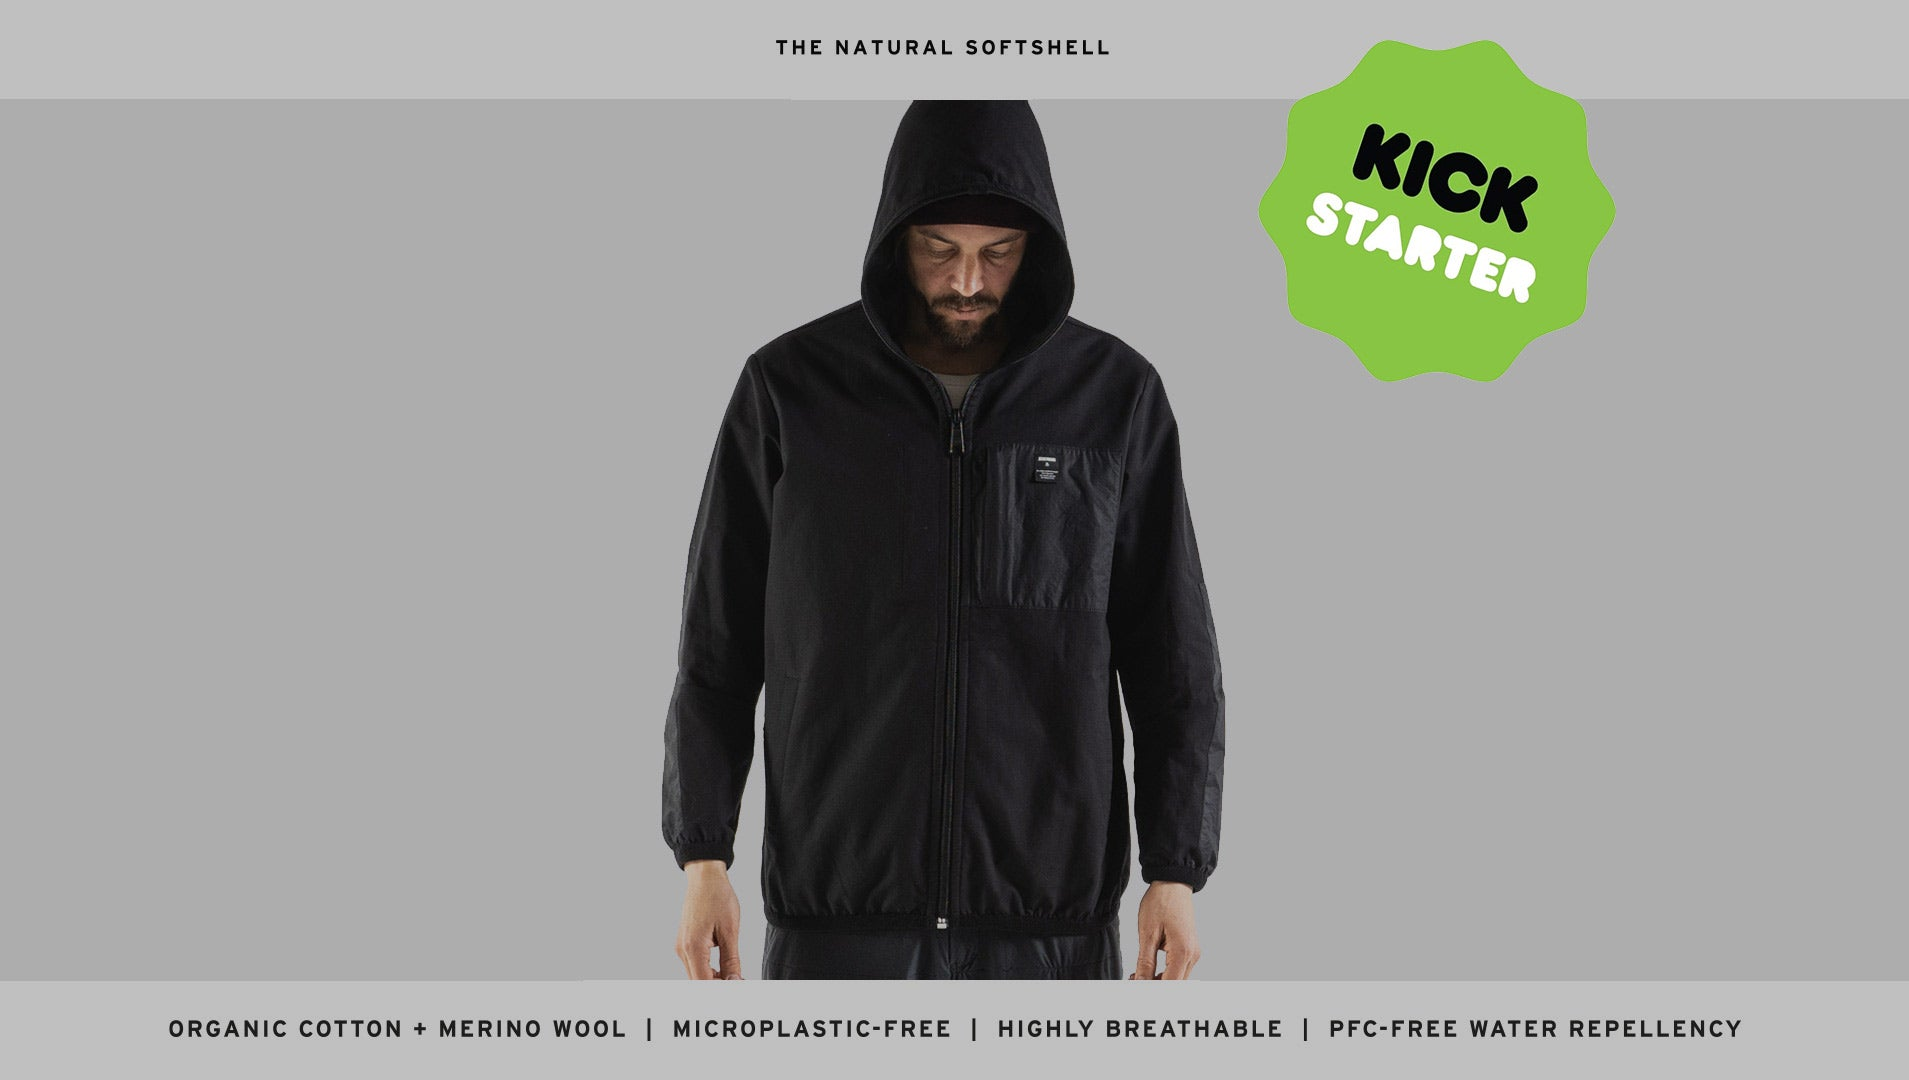 The NATURAL SOFTSHELL - Performance without plastic